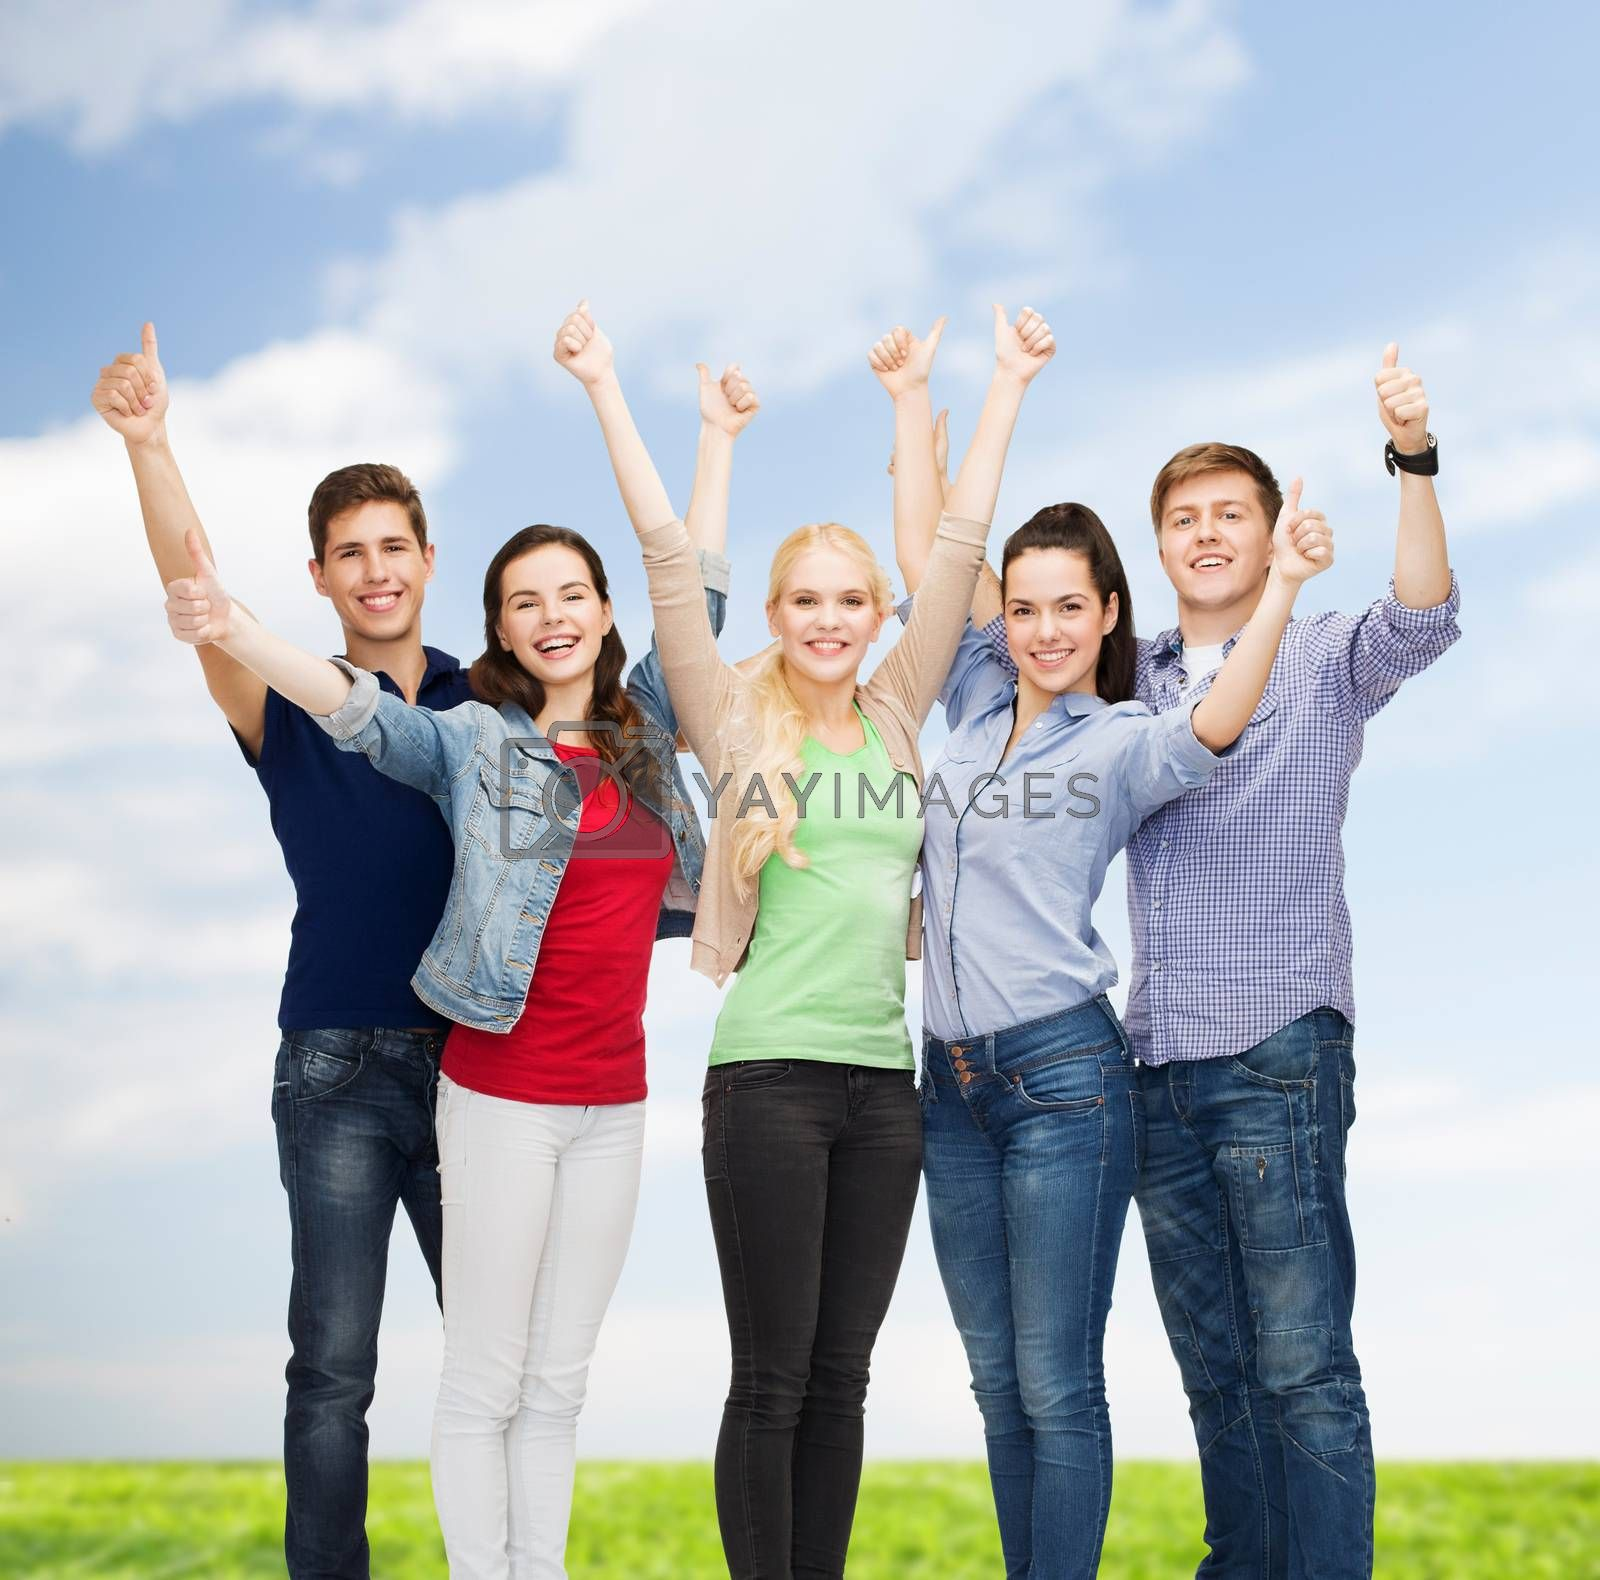 group of smiling students showing thumbs up by dolgachov